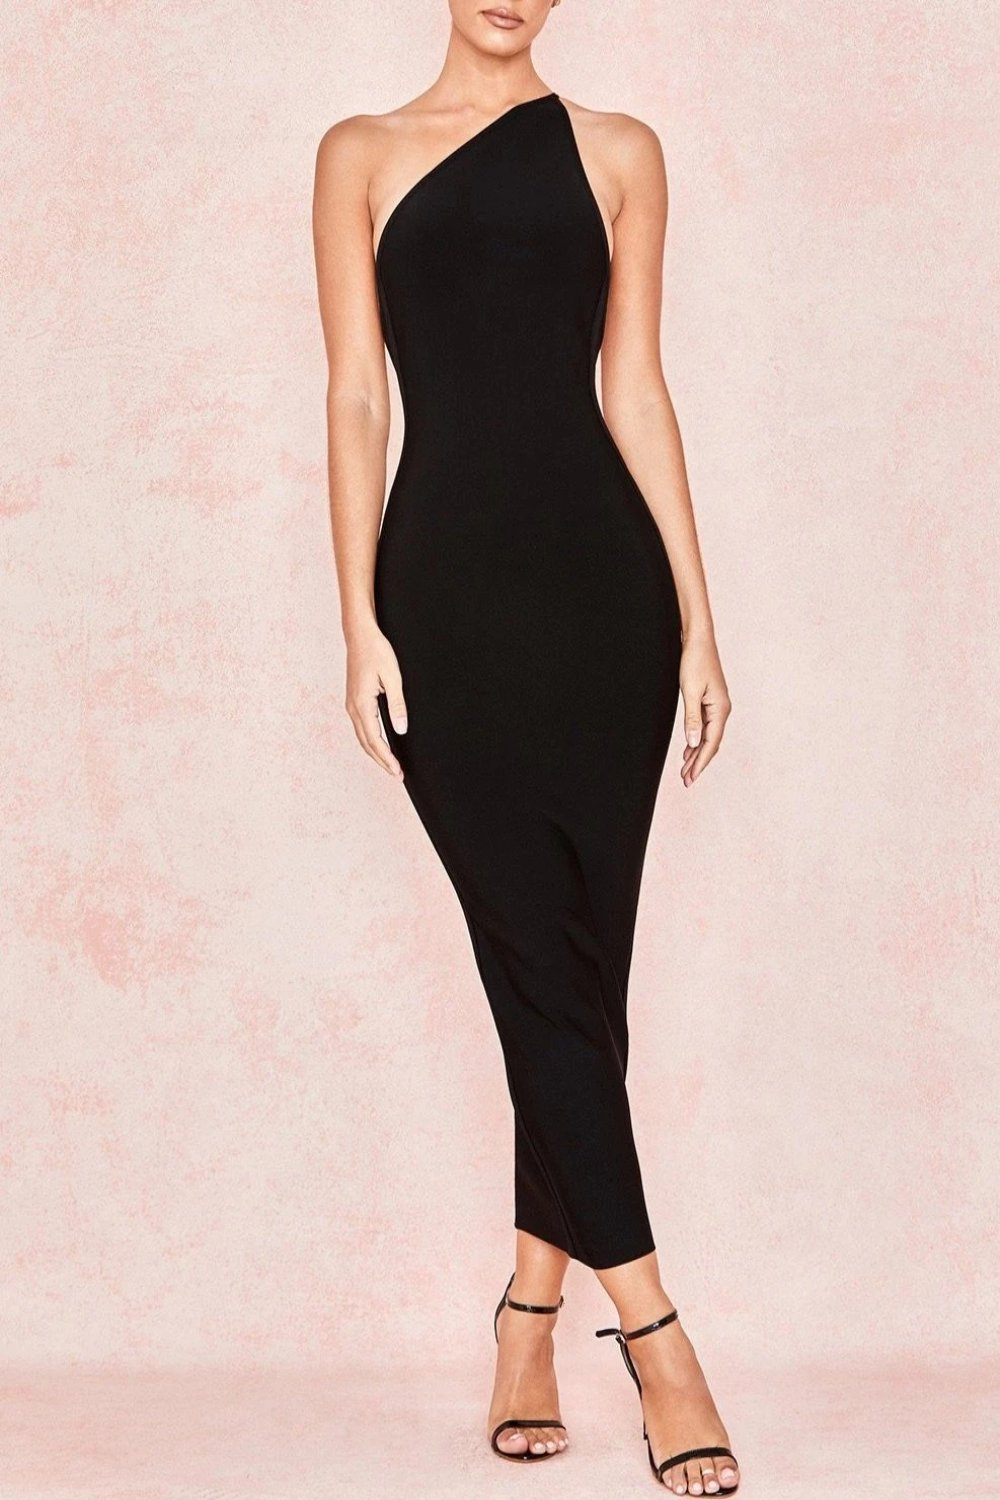 BLACK ONE SHOULDER BANDAGE DRESS